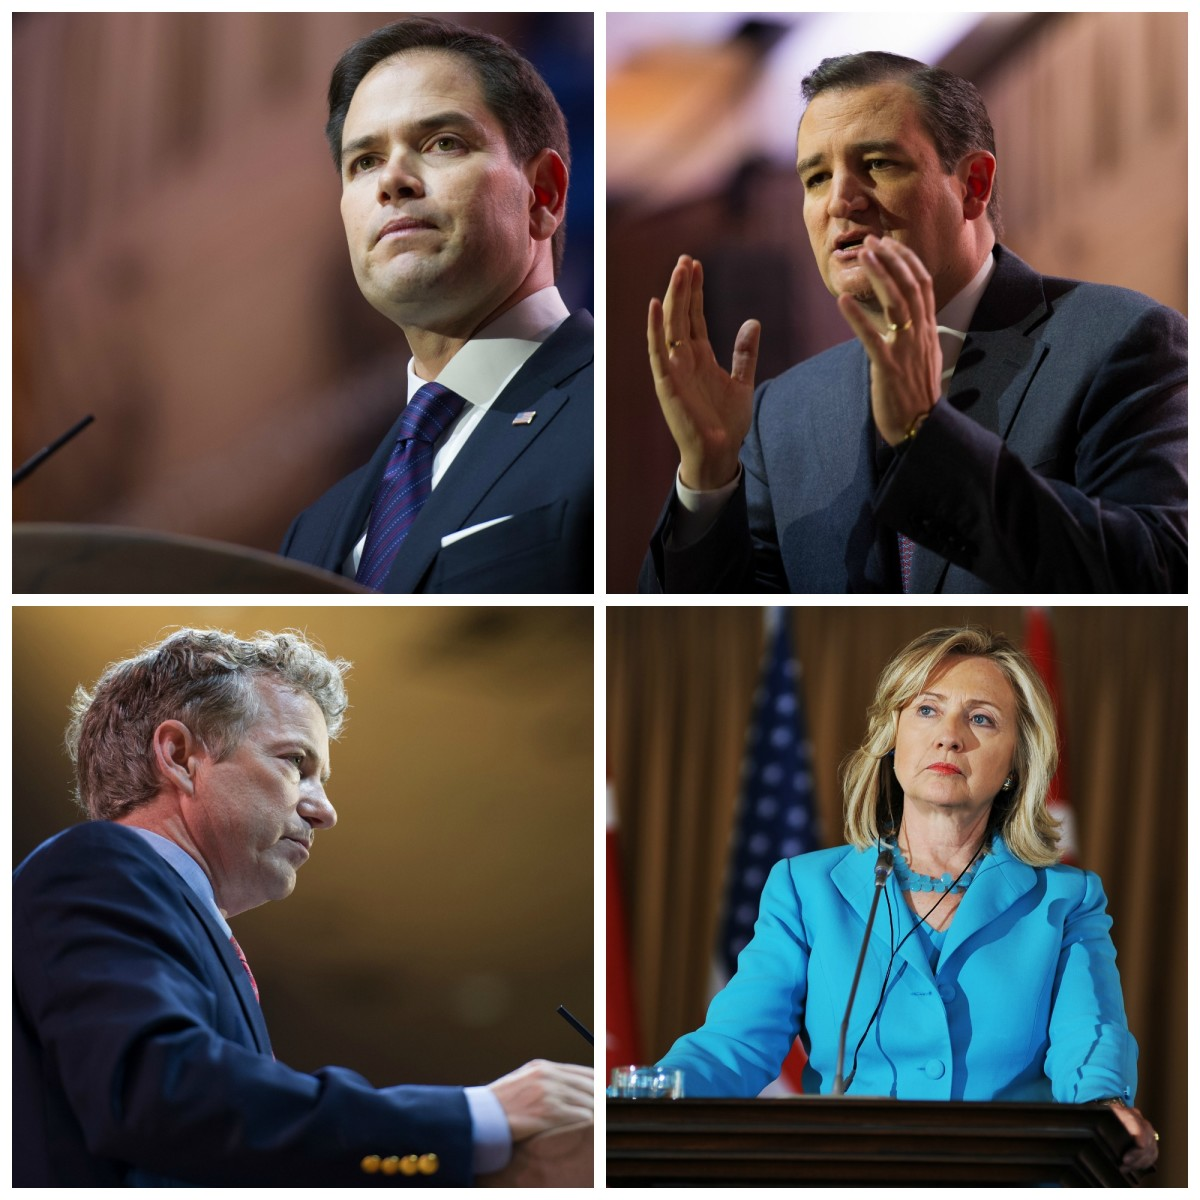 Clockwise, from top left: Marco Rubio, Ted Cruz, Hillary Clinton, and Rand Paul. (Photos: Christopher Halloran/Kisa Kuyruk/Shutterstock/Pacific Standard)